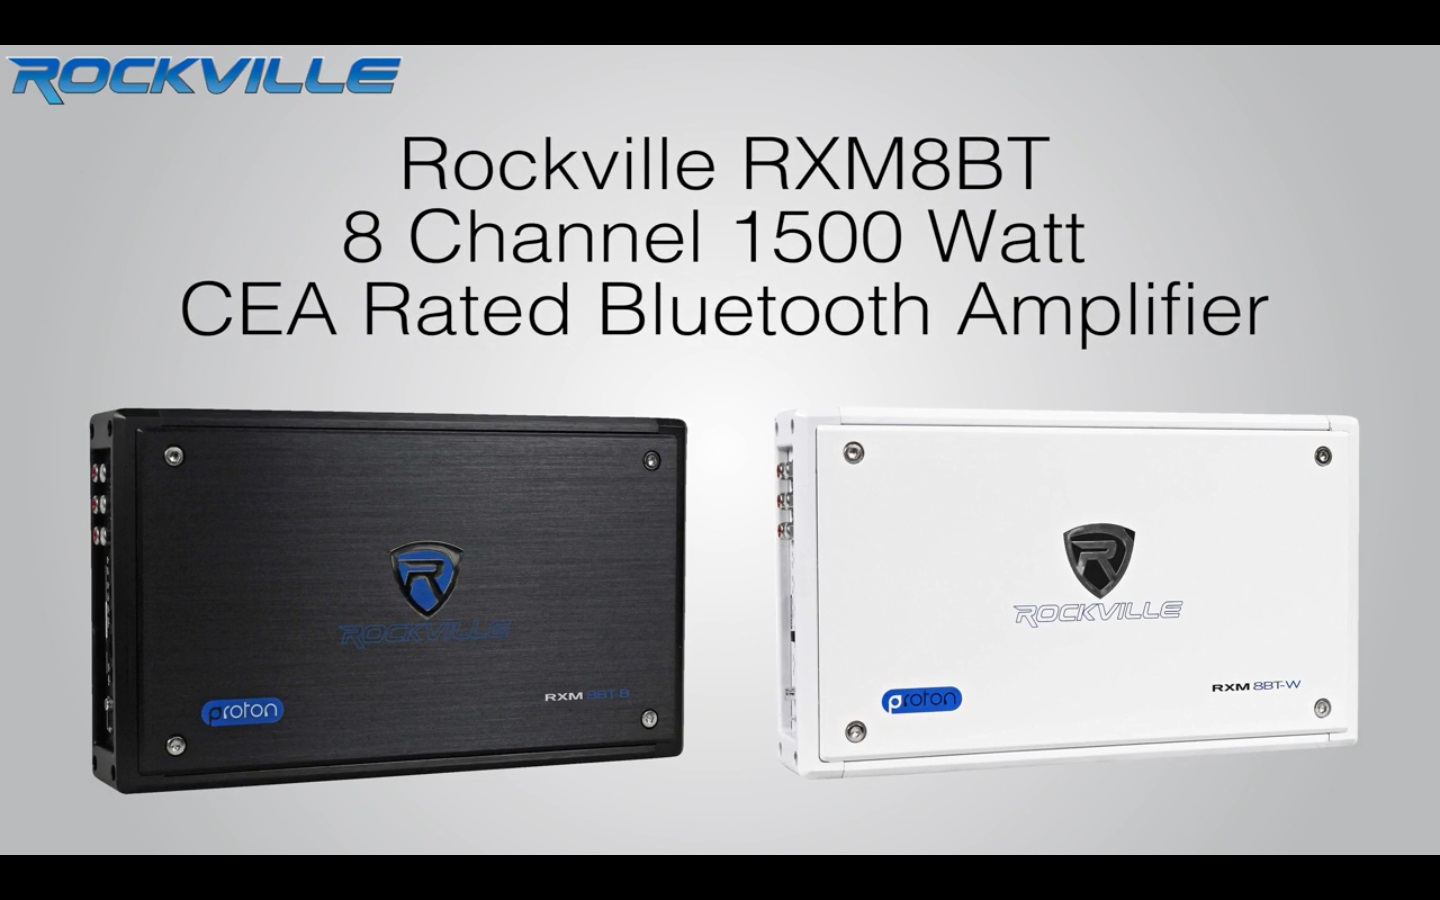 RXM8BT rockville rxm8btb 8 channel 1500 watt marine bluetooth amplifier w GMC Factory Stereo Wiring Diagrams at arjmand.co